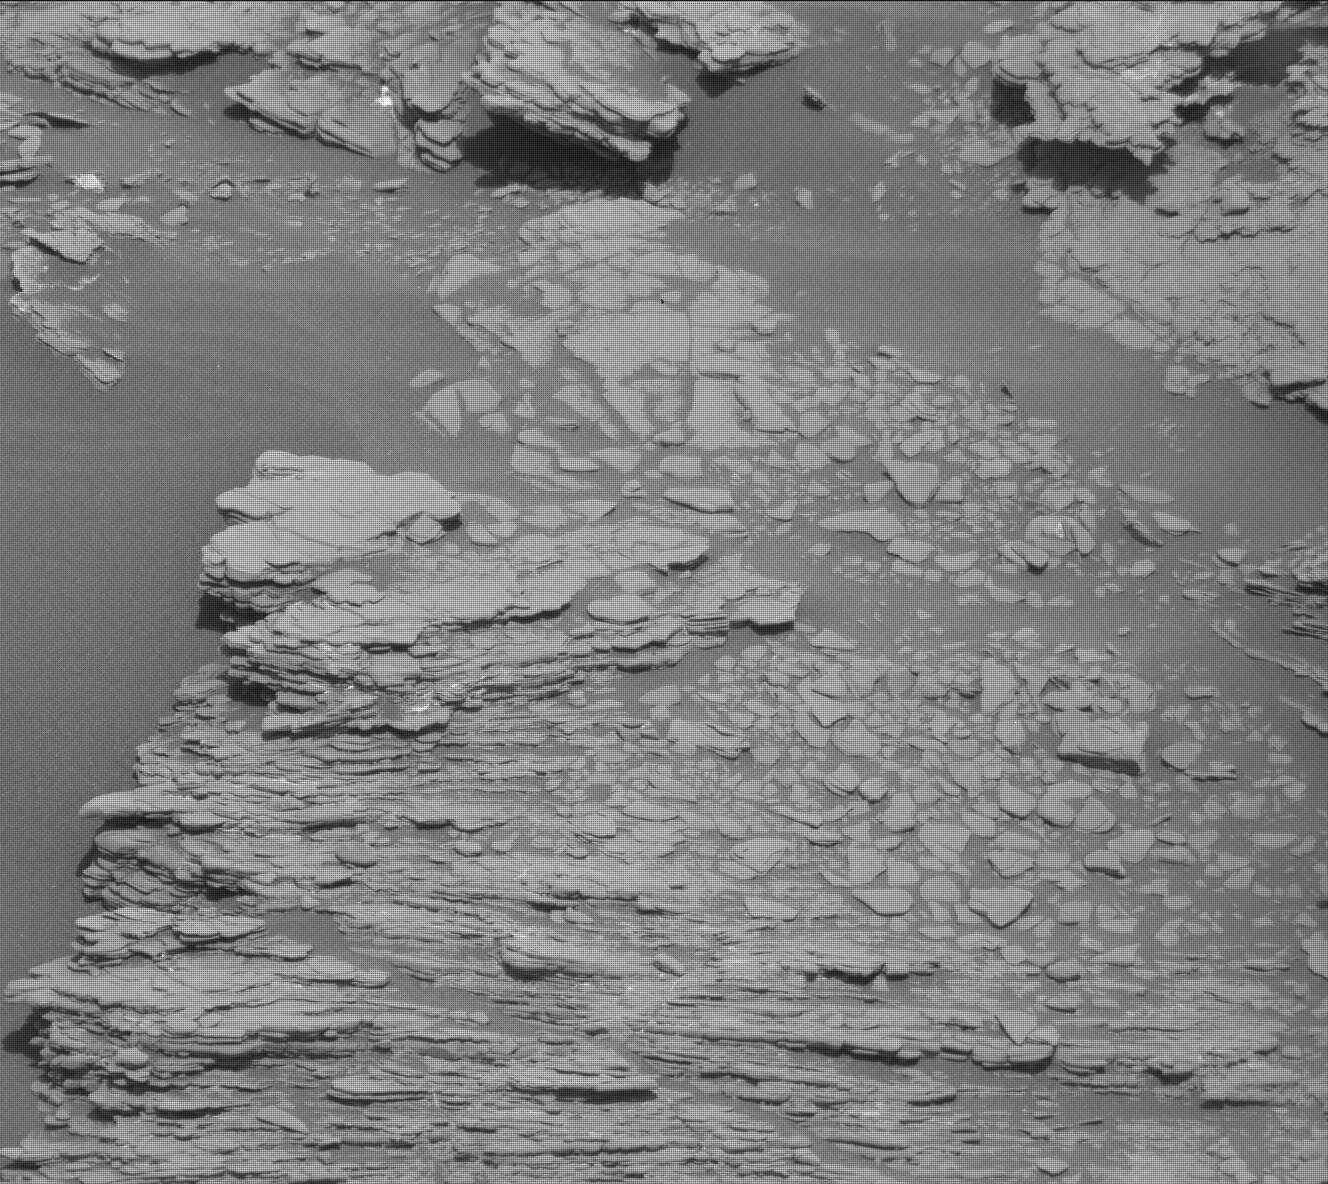 Nasa's Mars rover Curiosity acquired this image using its Mast Camera (Mastcam) on Sol 2466